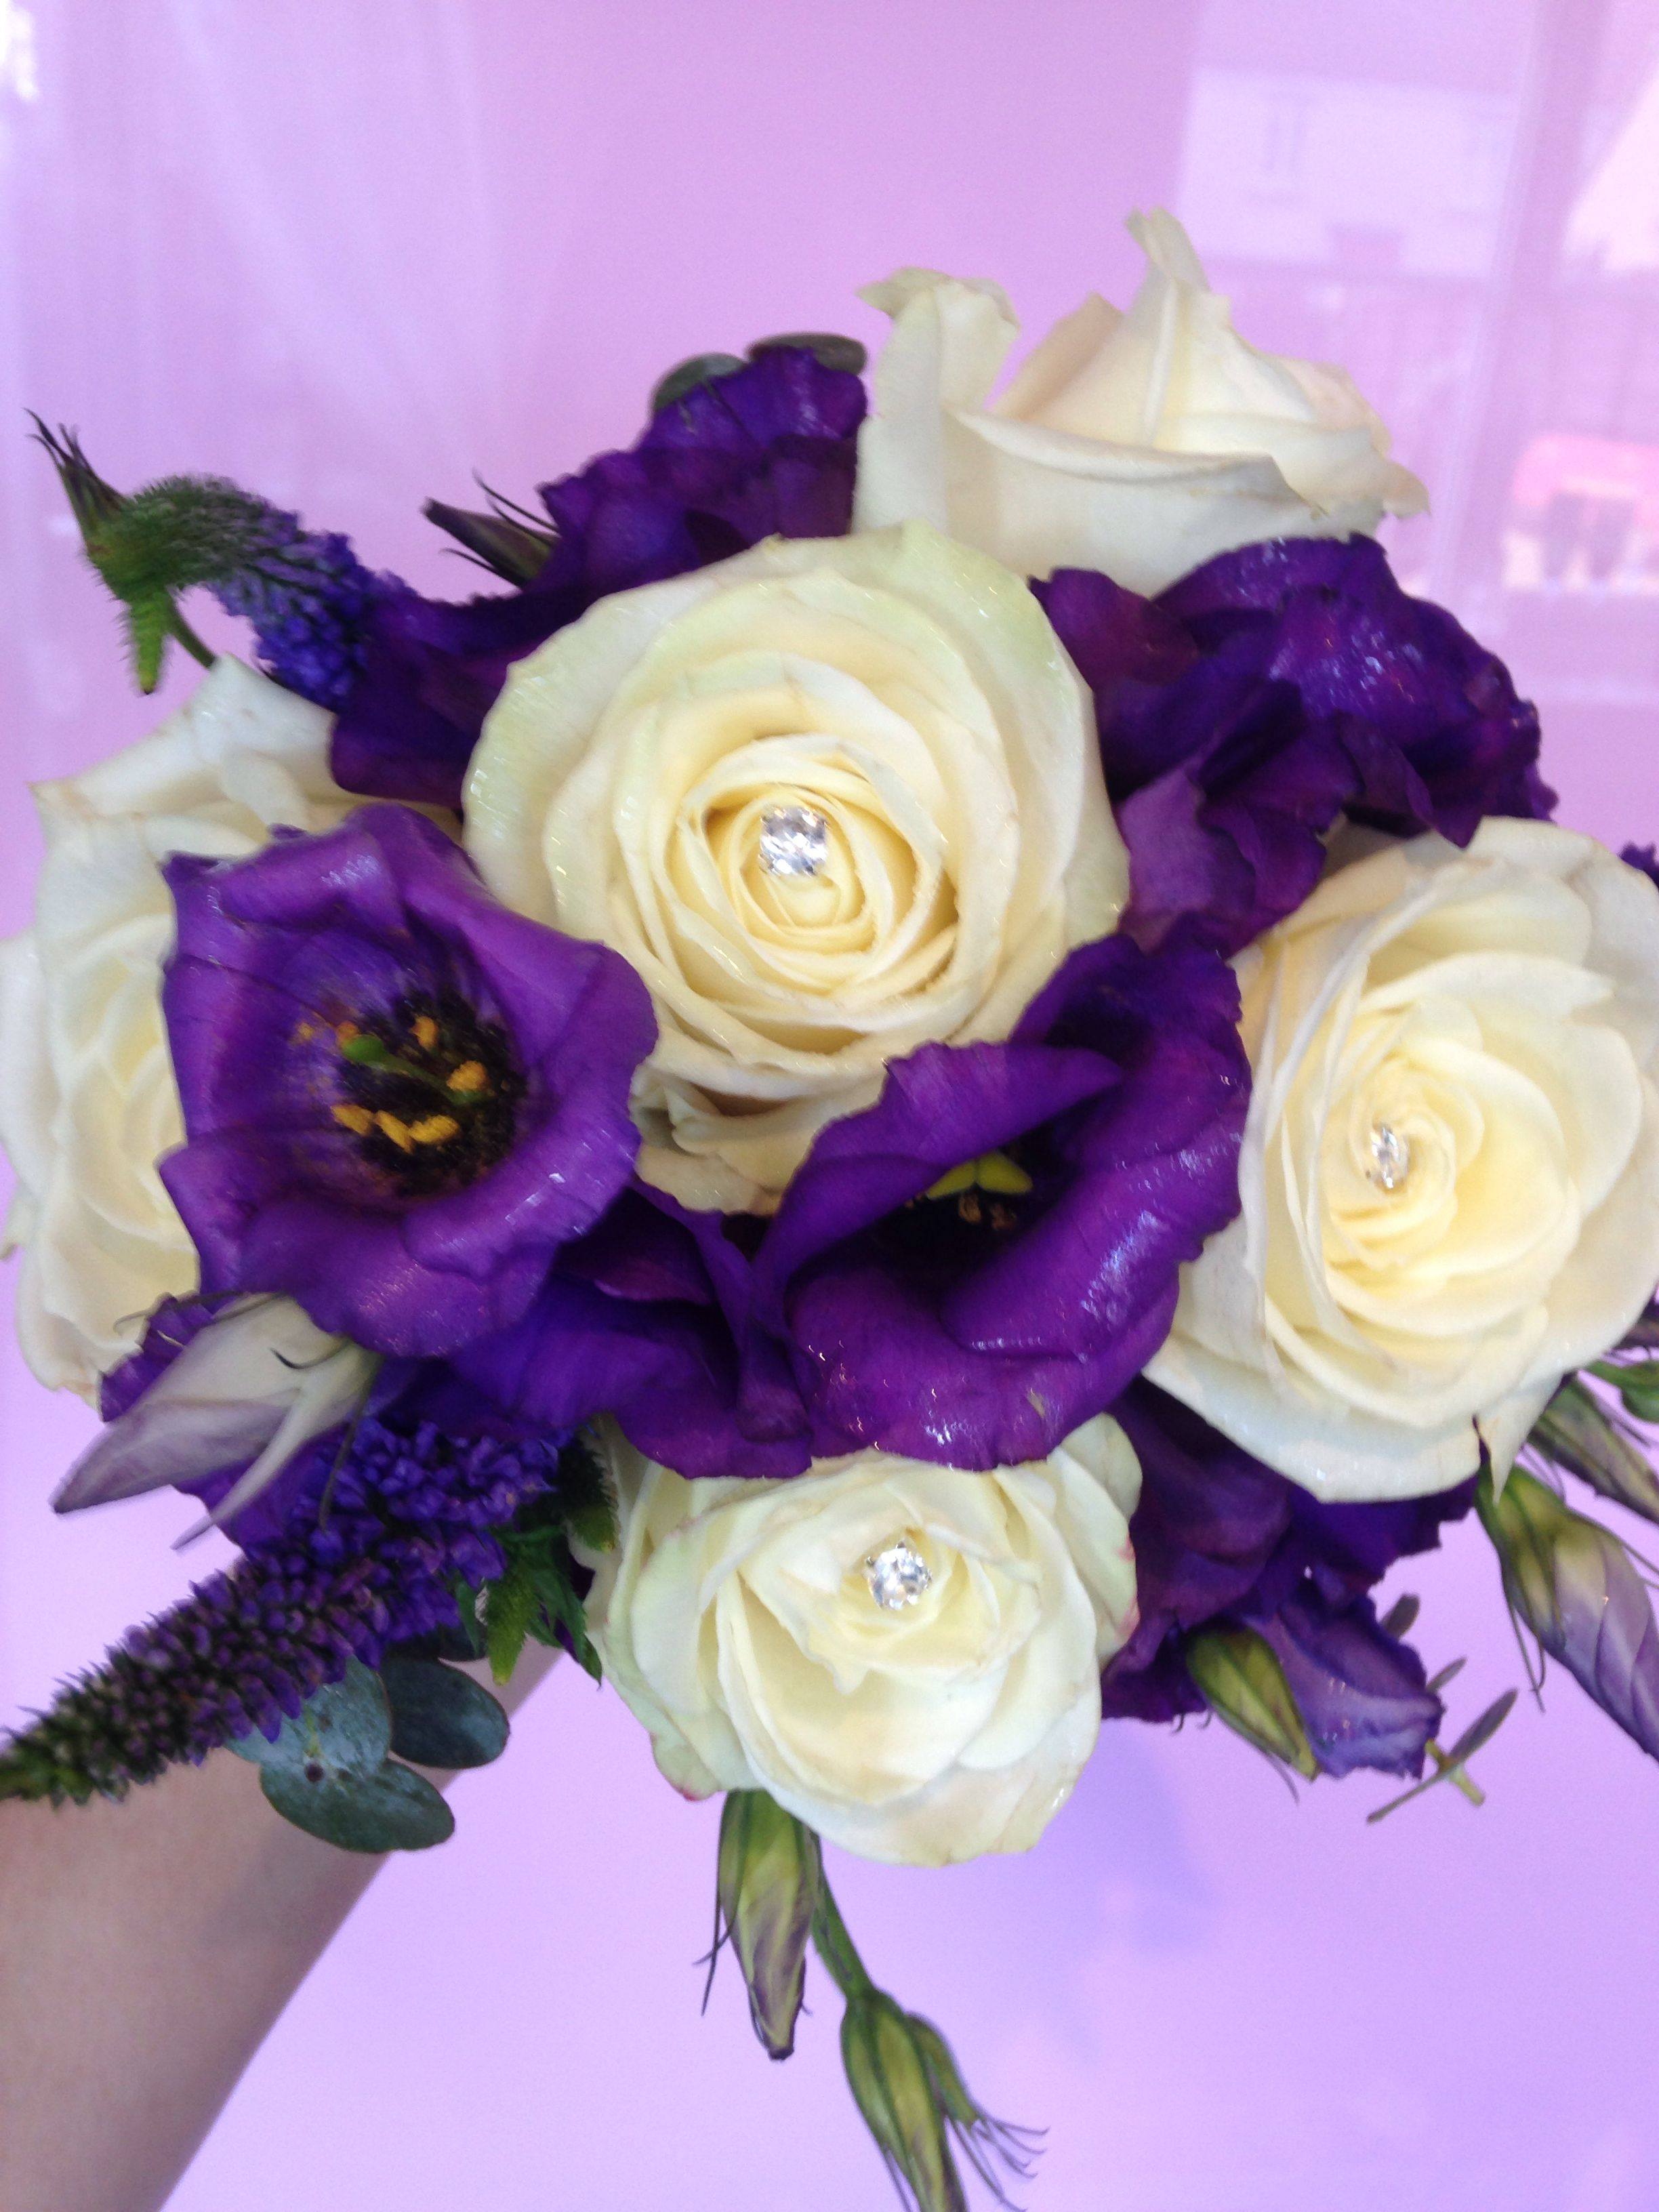 Cream roses and purple flower bridesmaid bouquet by www